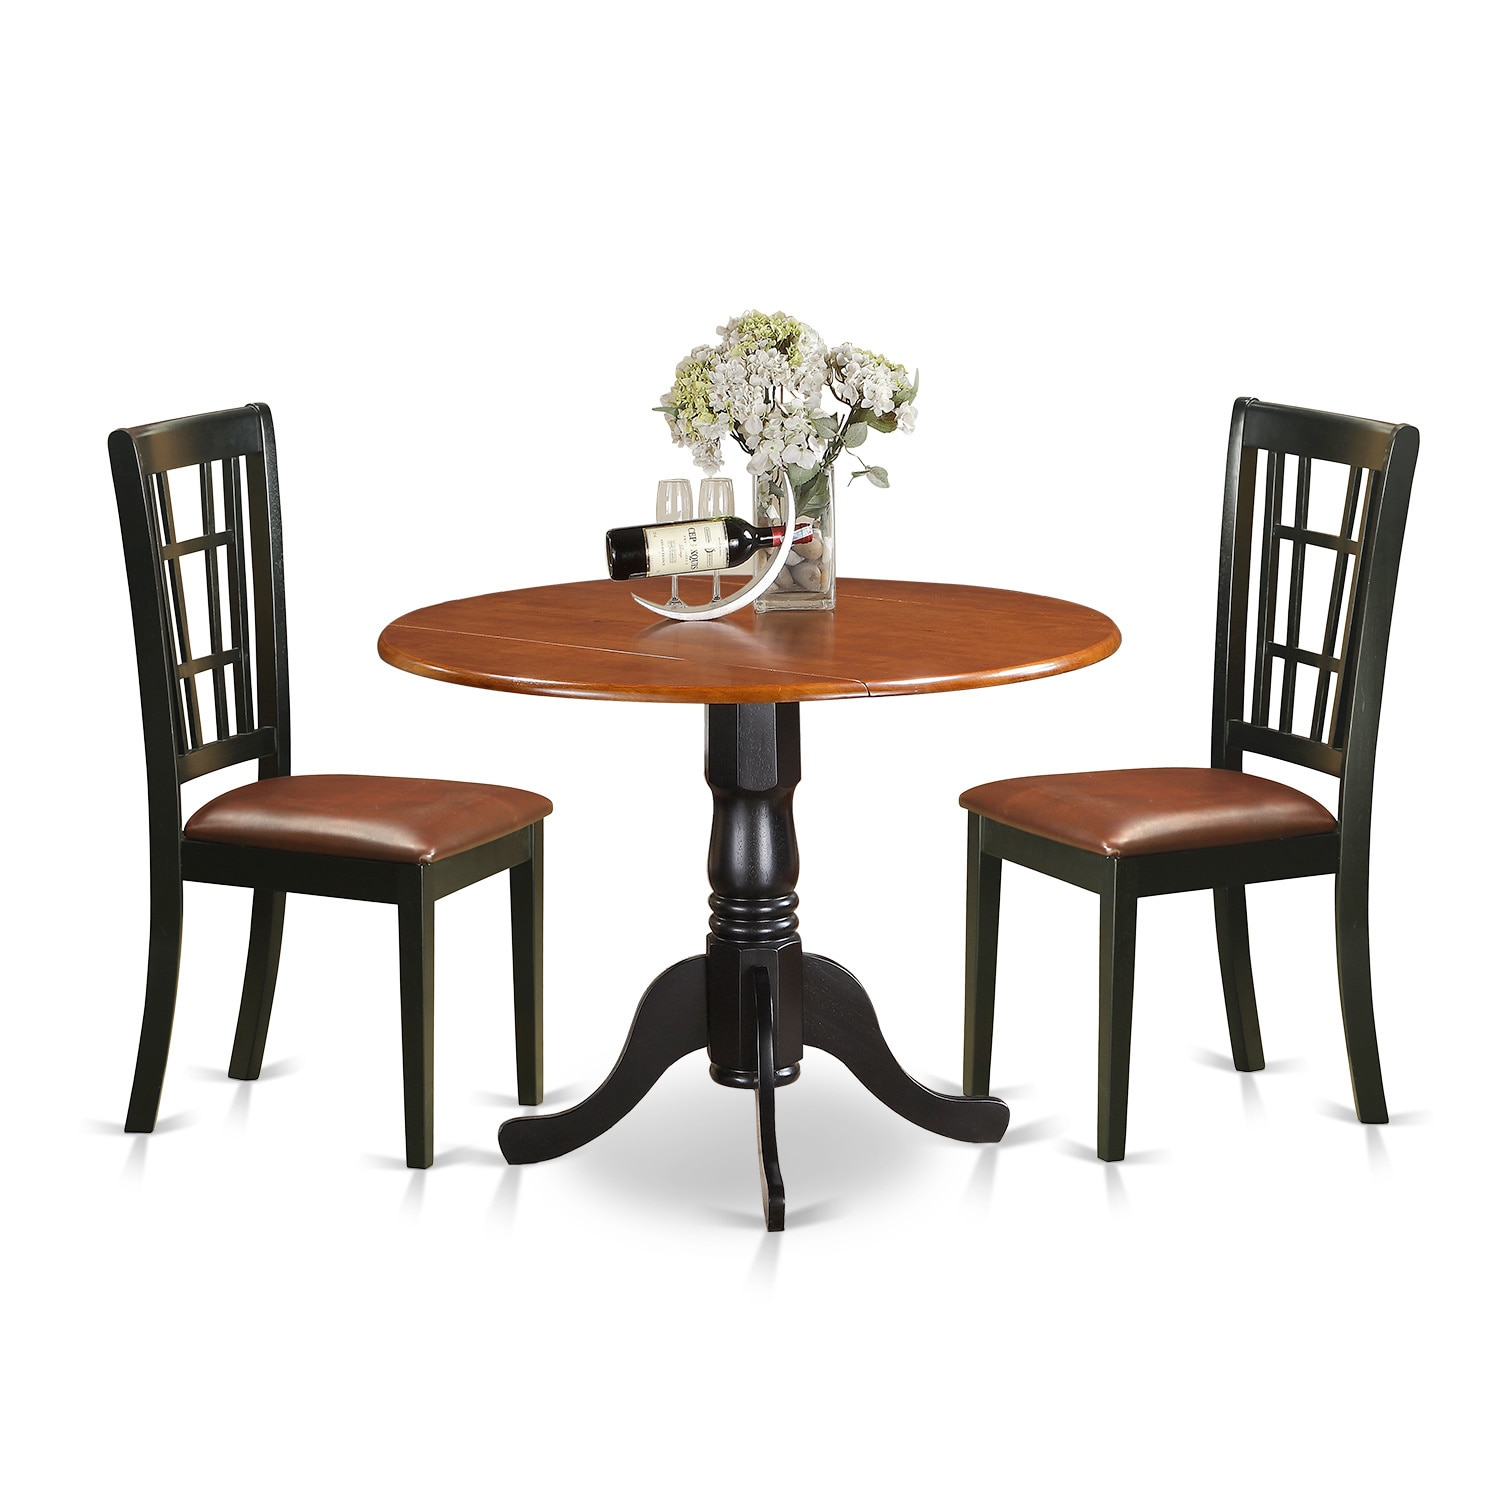 oak kitchen table sets inexpensive countertops for kitchens shop 3 piece dublin set with dining and 2 solid wood chairs free shipping today overstock com 12028019